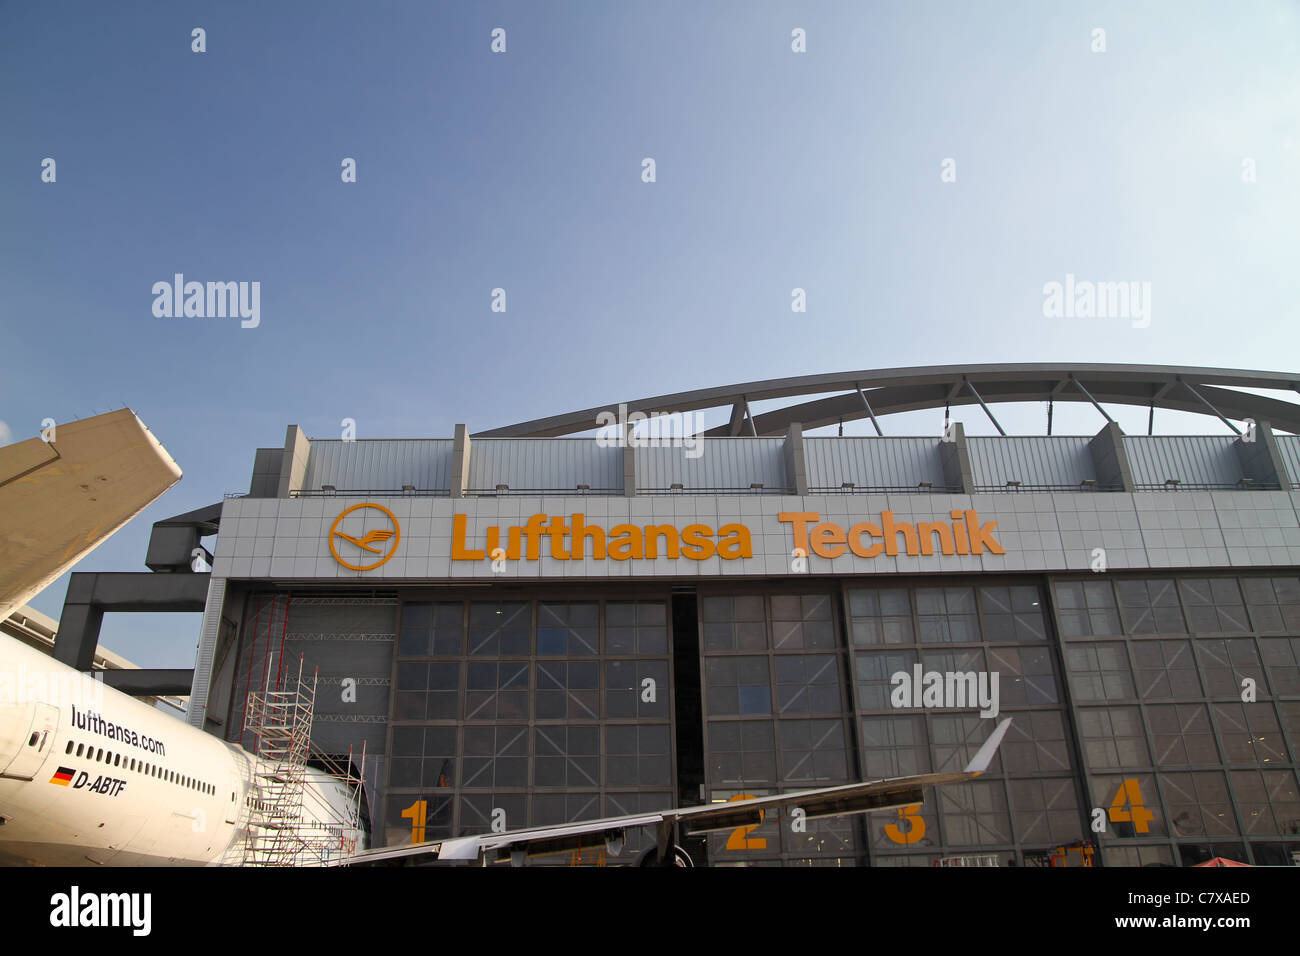 View of the Lufthansa Technik Hangar at the Hamburg Airport. - Stock Image